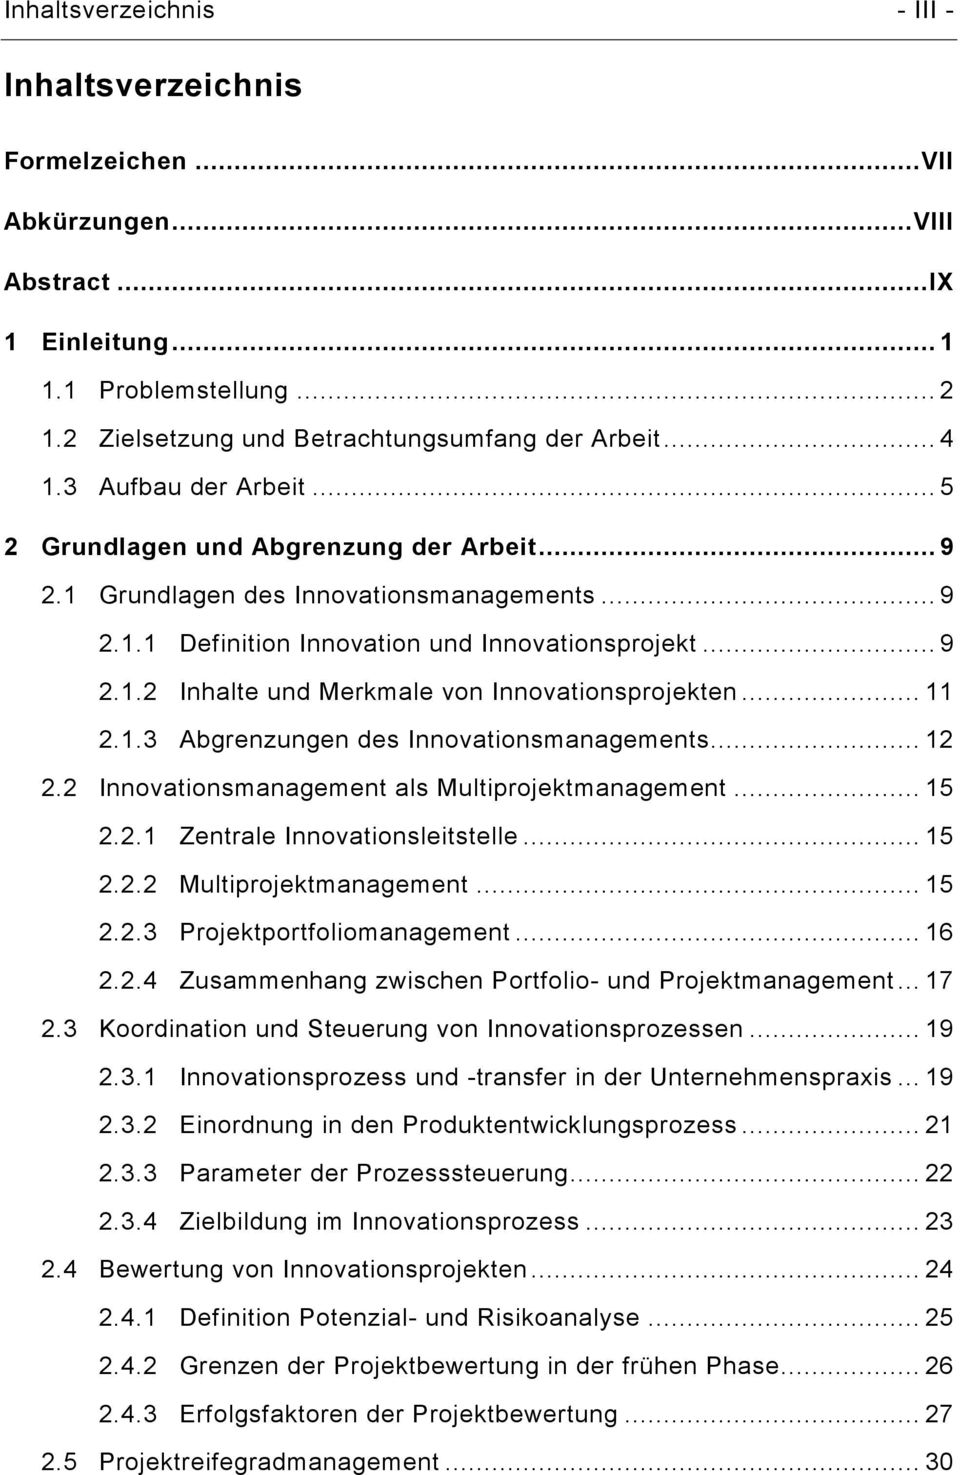 .. 11 2.1.3 Abgrenzungen des Innovationsmanagements... 12 2.2 Innovationsmanagement als Multiprojektmanagement... 15 2.2.1 Zentrale Innovationsleitstelle... 15 2.2.2 Multiprojektmanagement... 15 2.2.3 Projektportfoliomanagement.